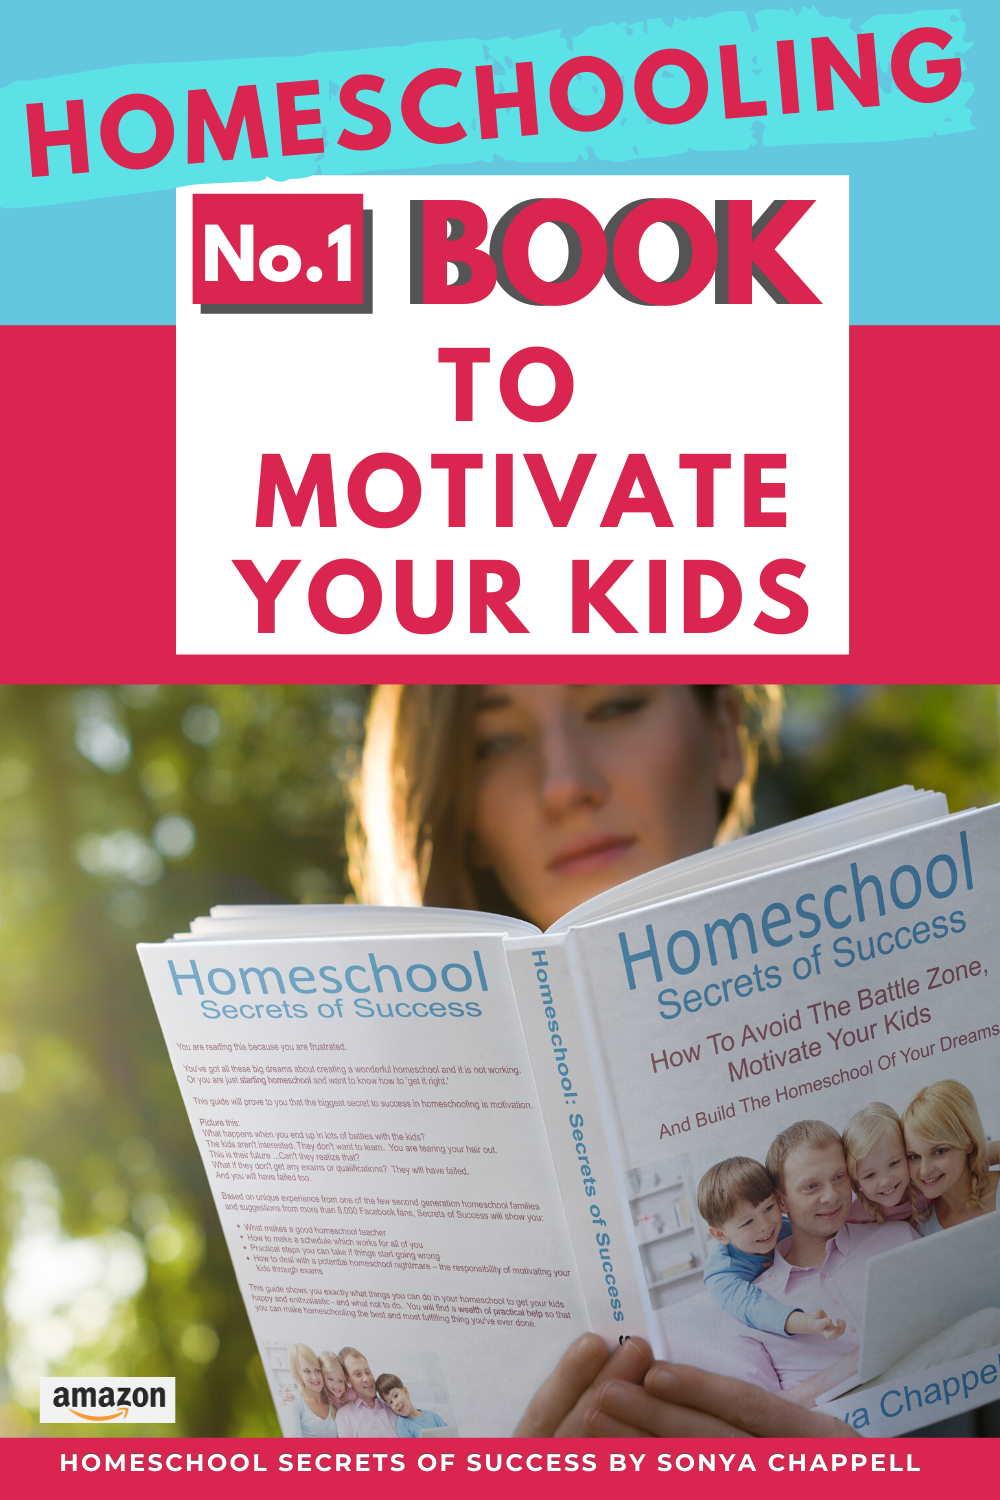 Homeschool Secrets of Success on how to motivate your child by Sonya Chappell